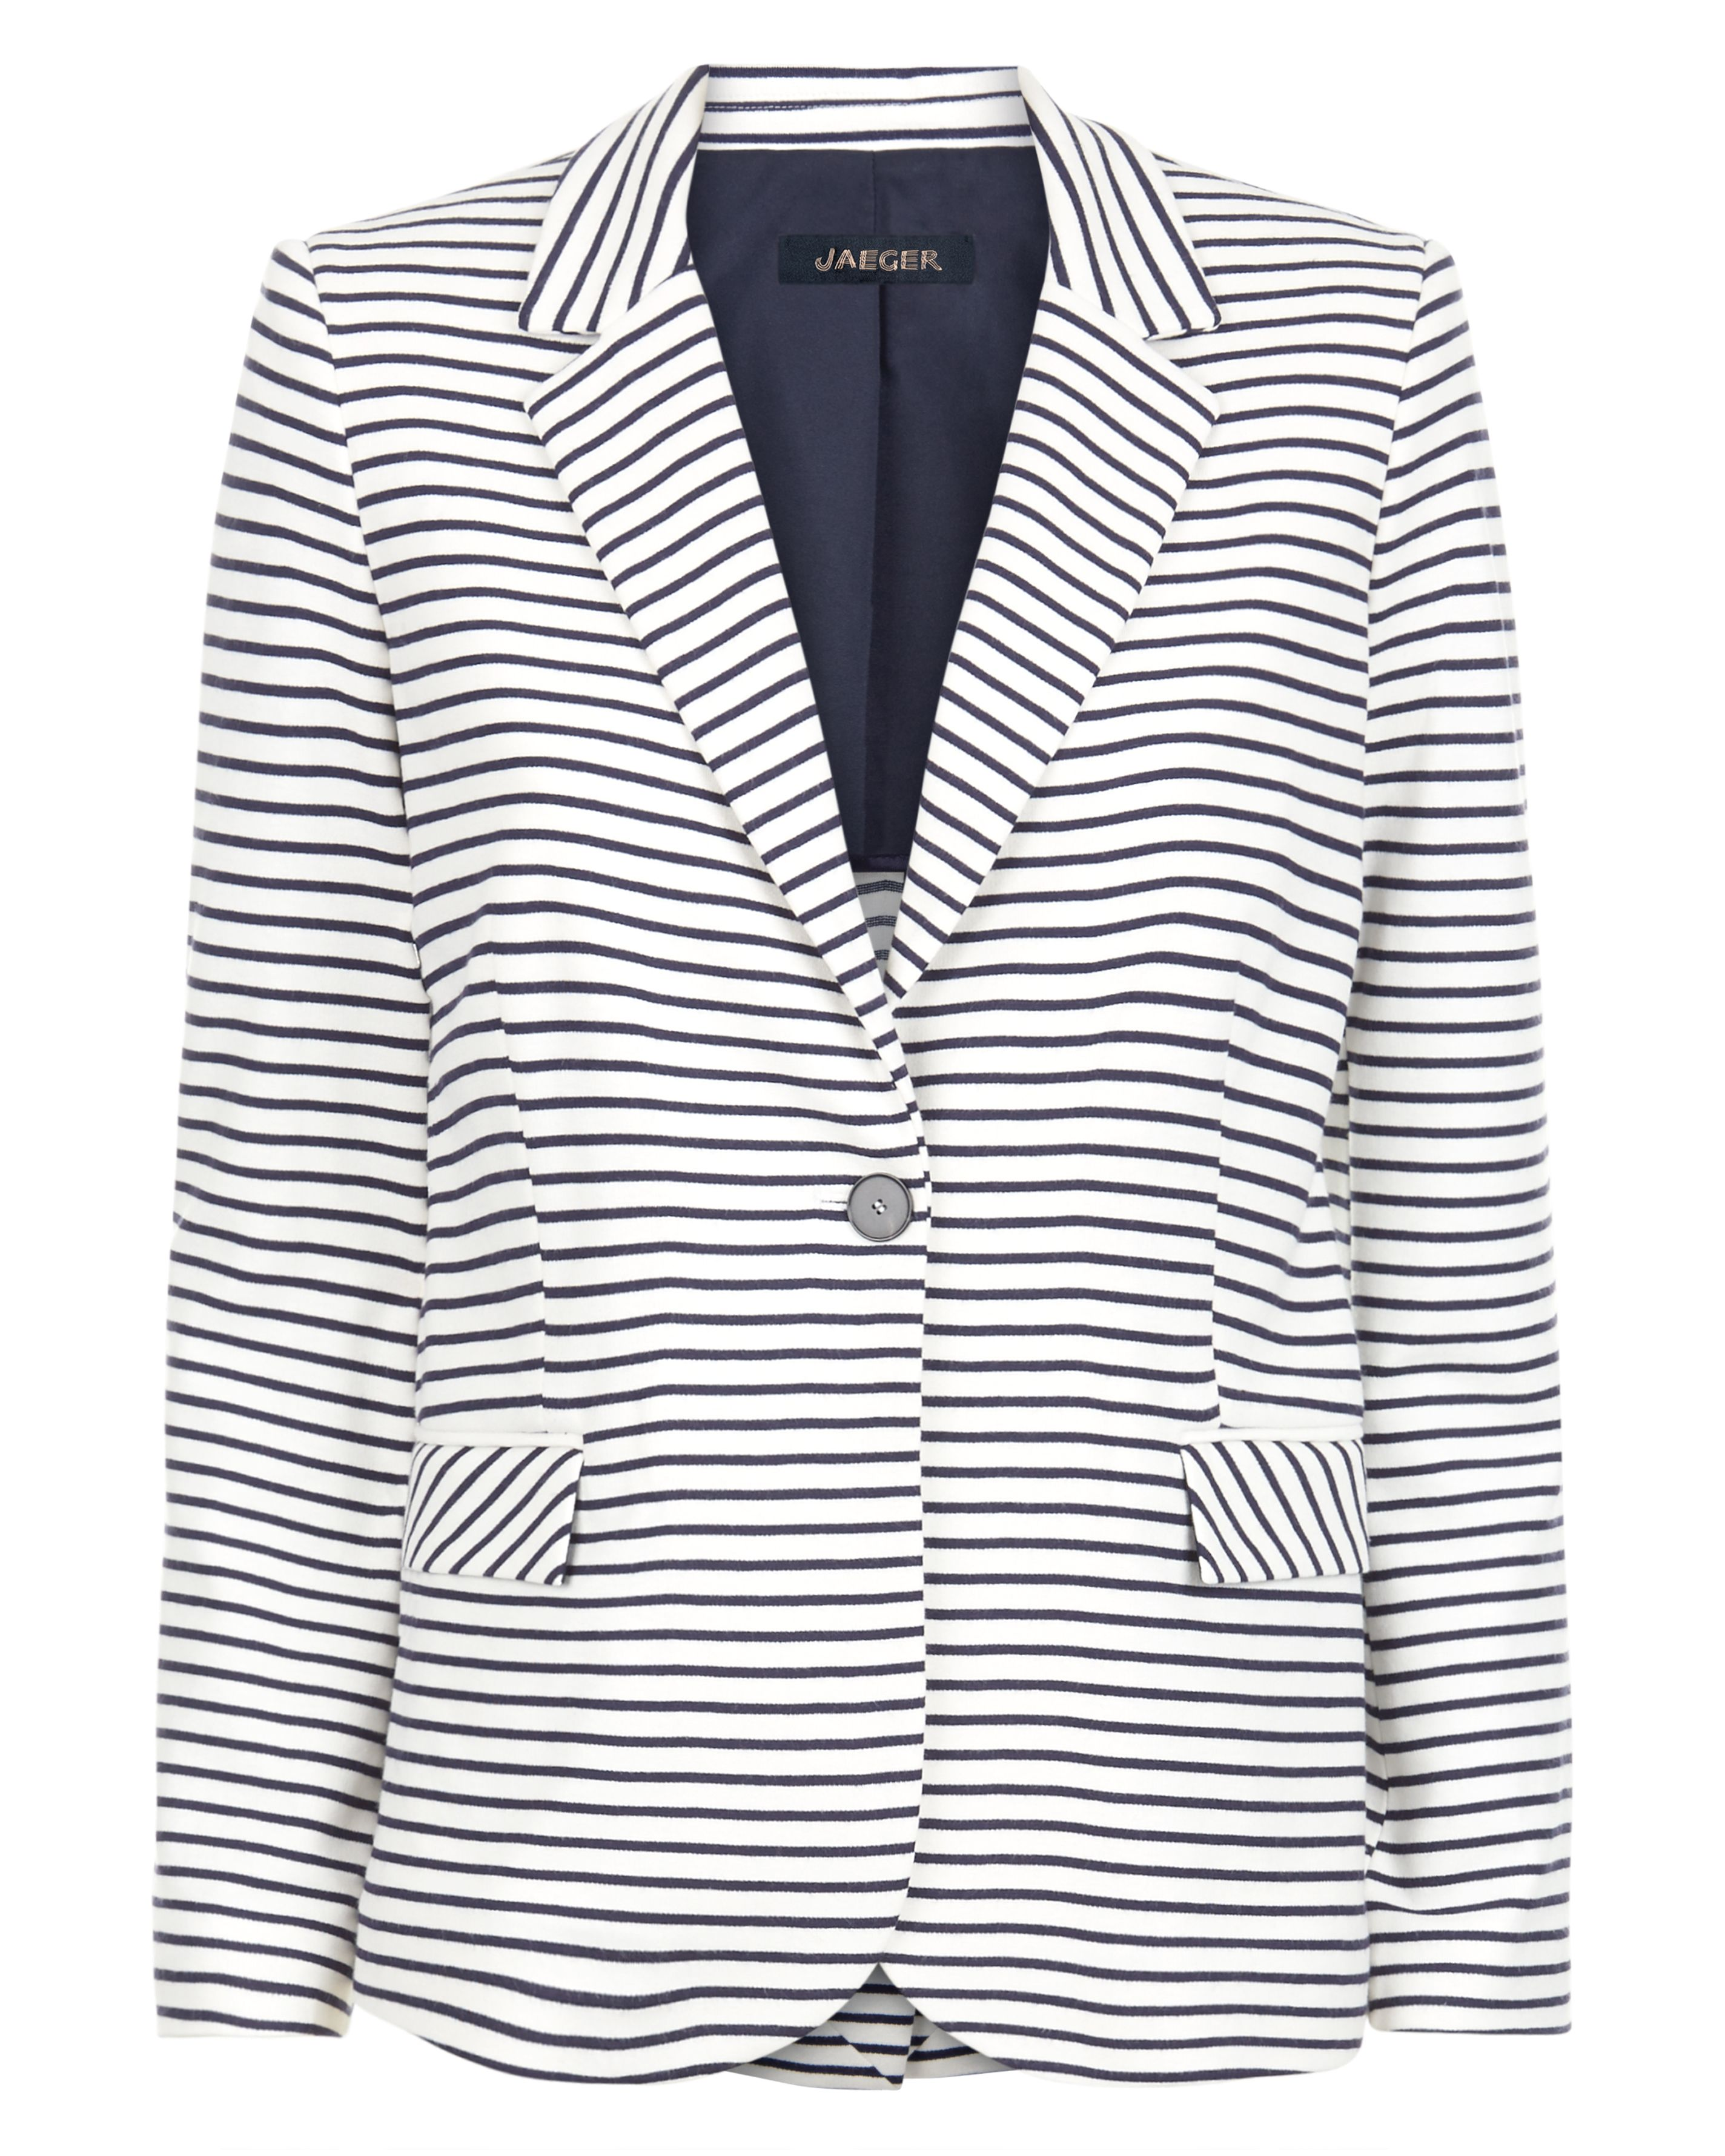 Jaeger Jersey Striped Blazer, White